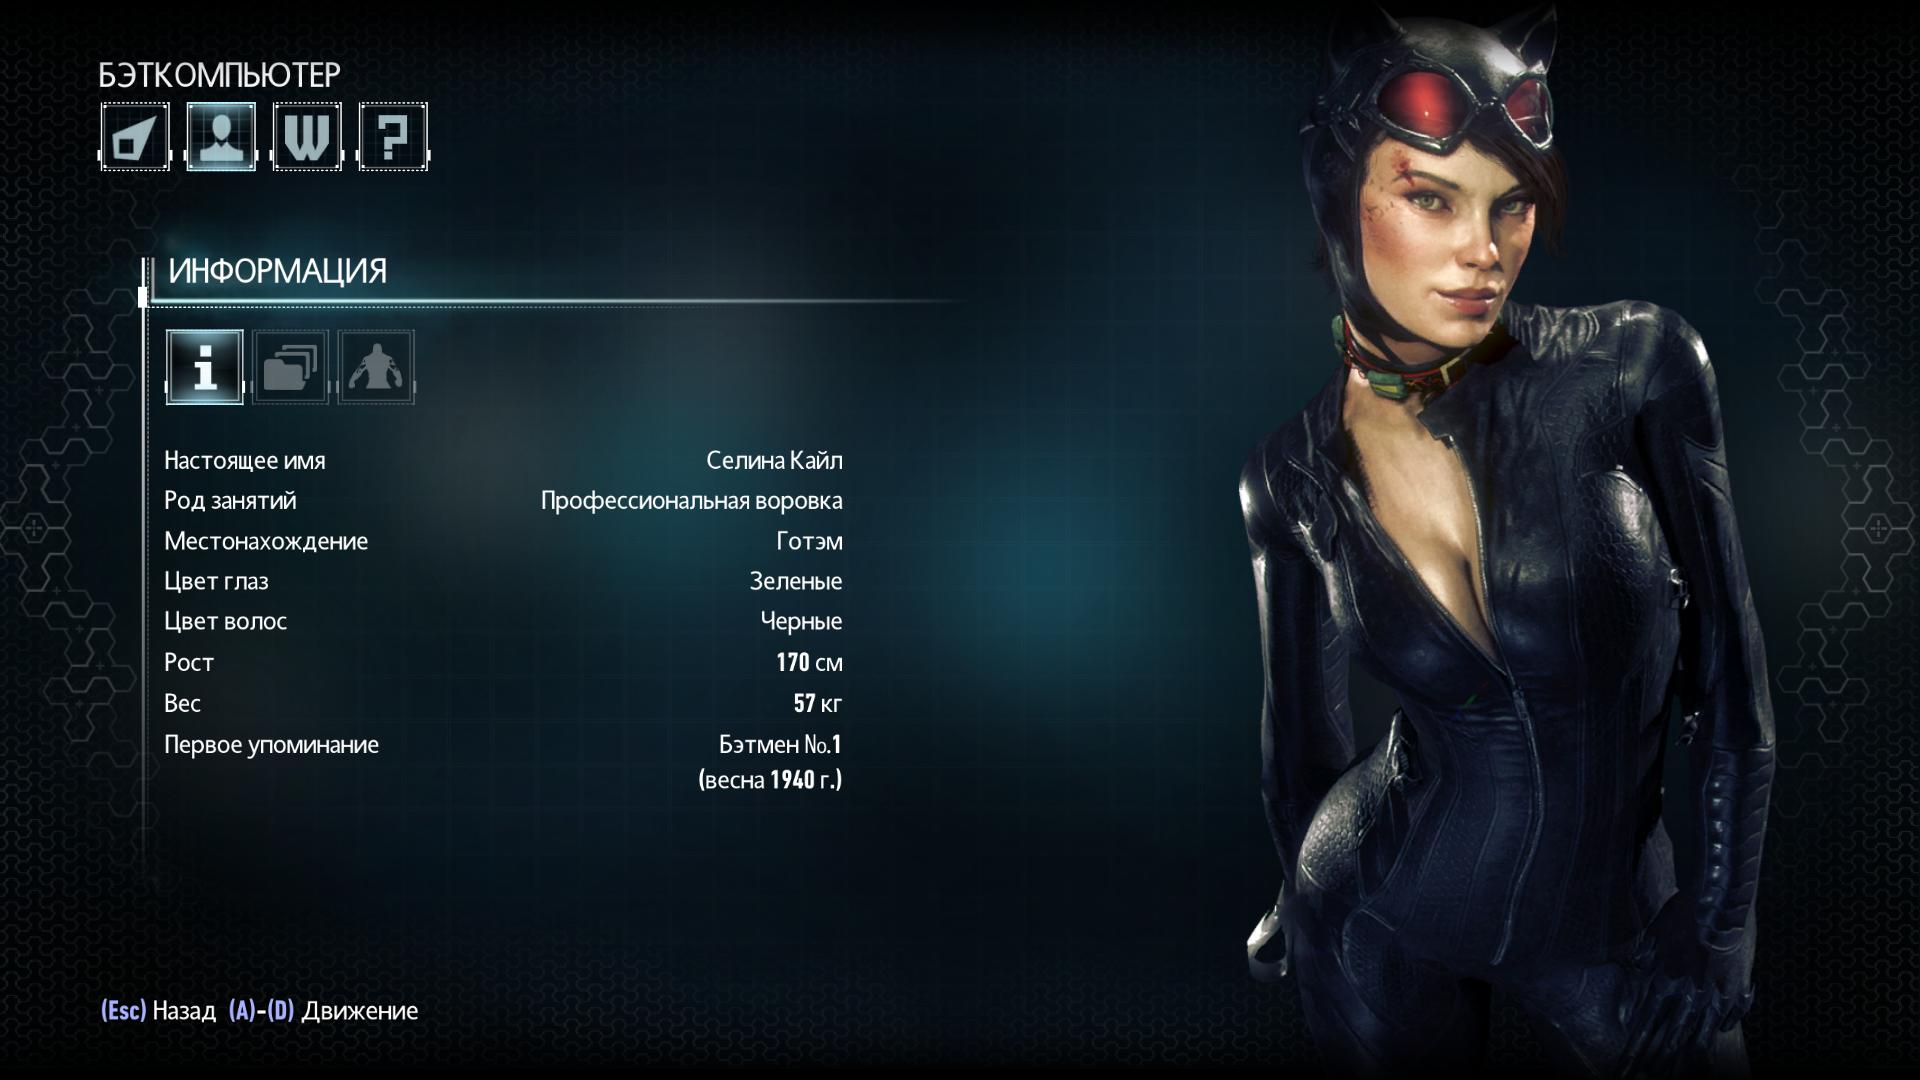 Catwoman arkham city unzipping her suit xvideos hentai videos